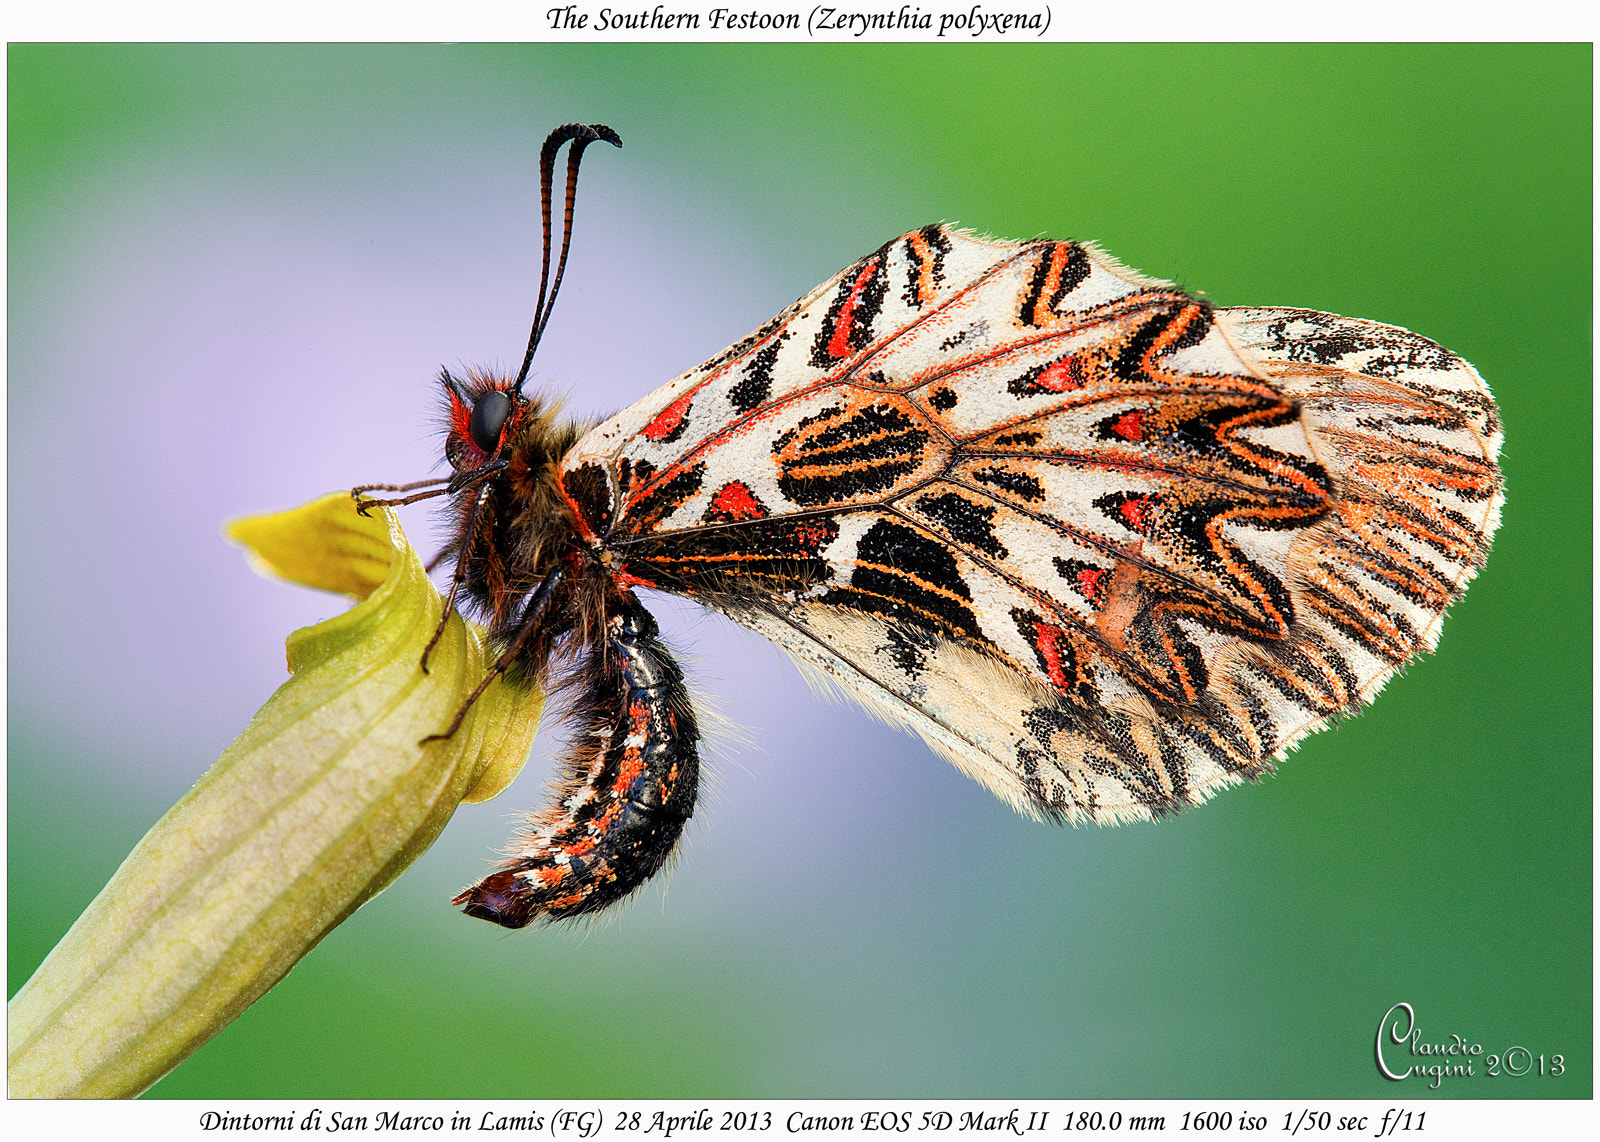 Photograph The Southern Festoon by Claudio Cugini on 500px